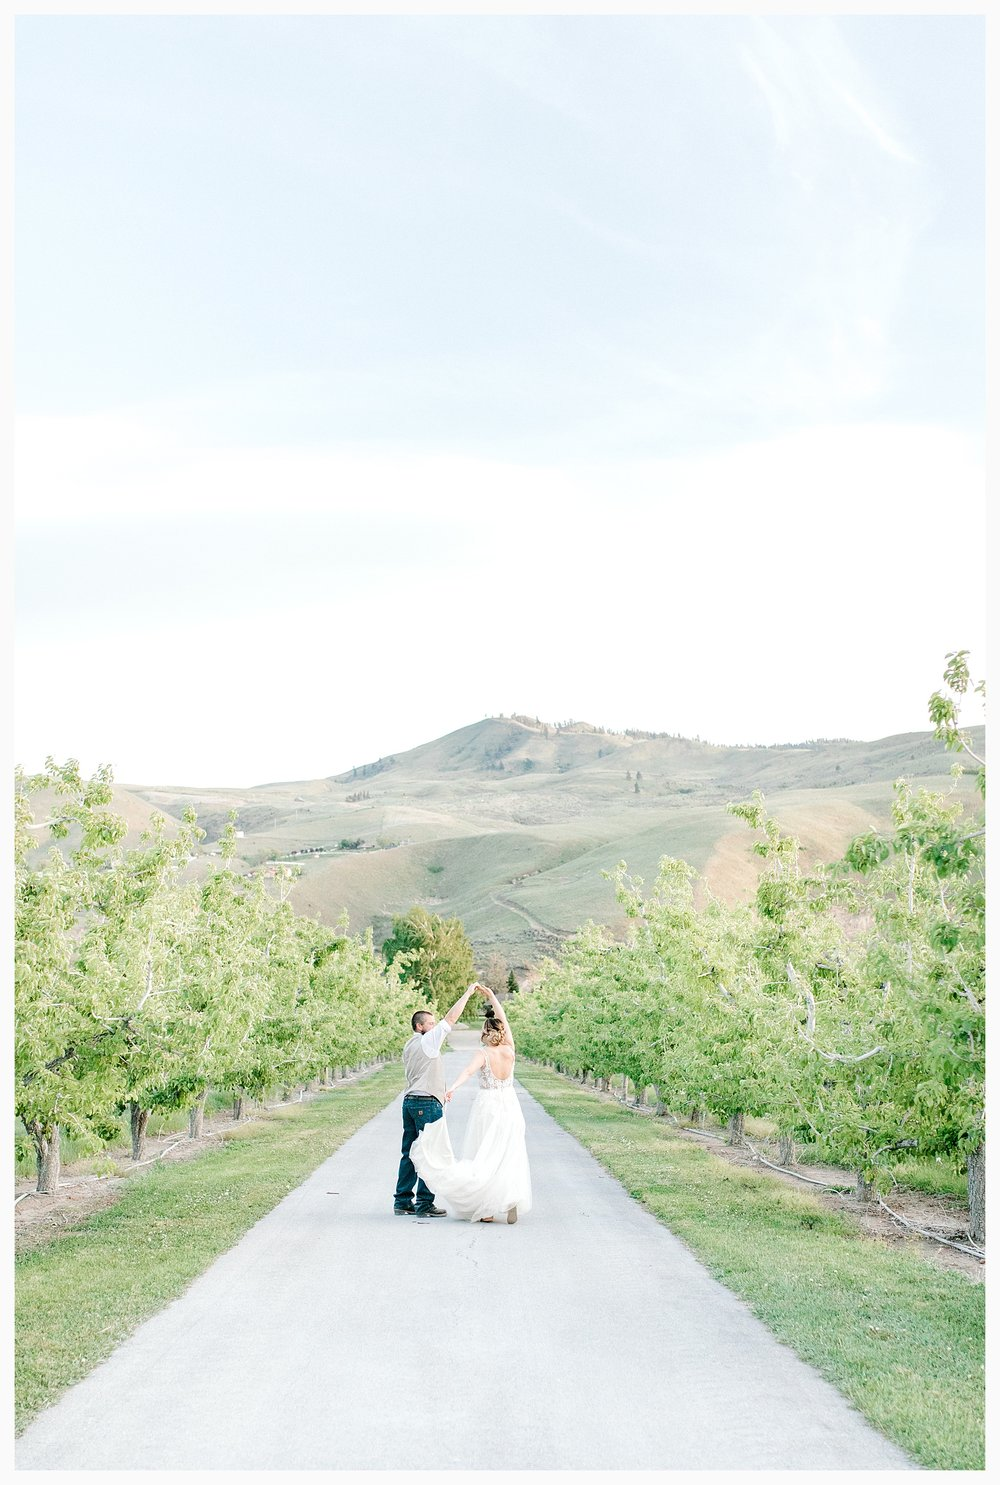 Rustic barn wedding in Wenatchee Washington at Sunshine Ranch on Easy Street, Emma Rose Company Seattle PNW Light and Airy Wedding Photographer_0138.jpg